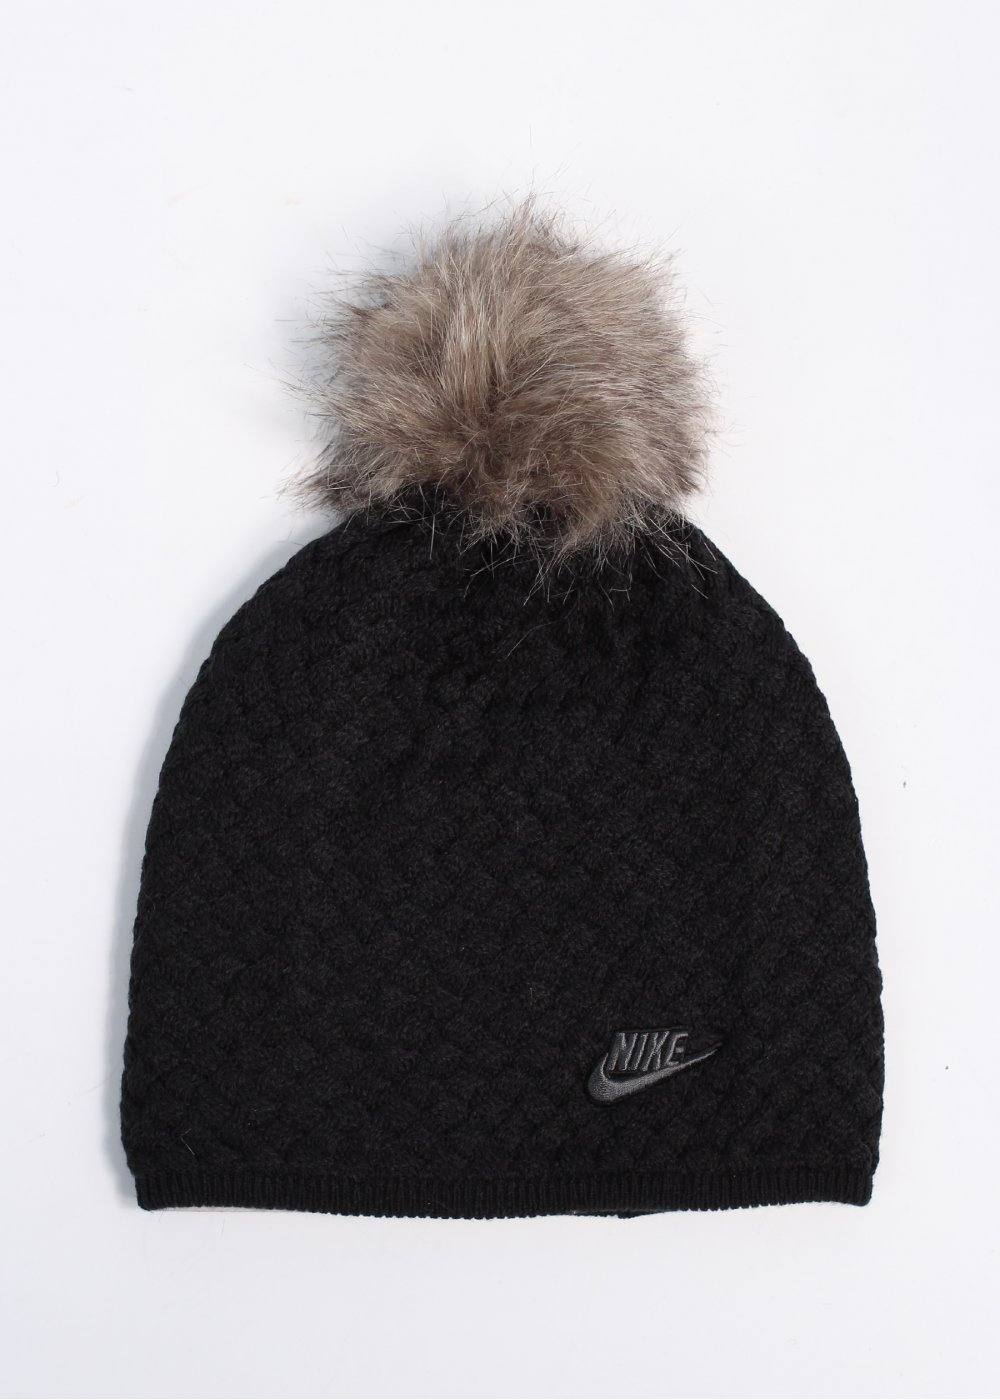 56c65216 Nike Fur Pom Pom Hat - Black